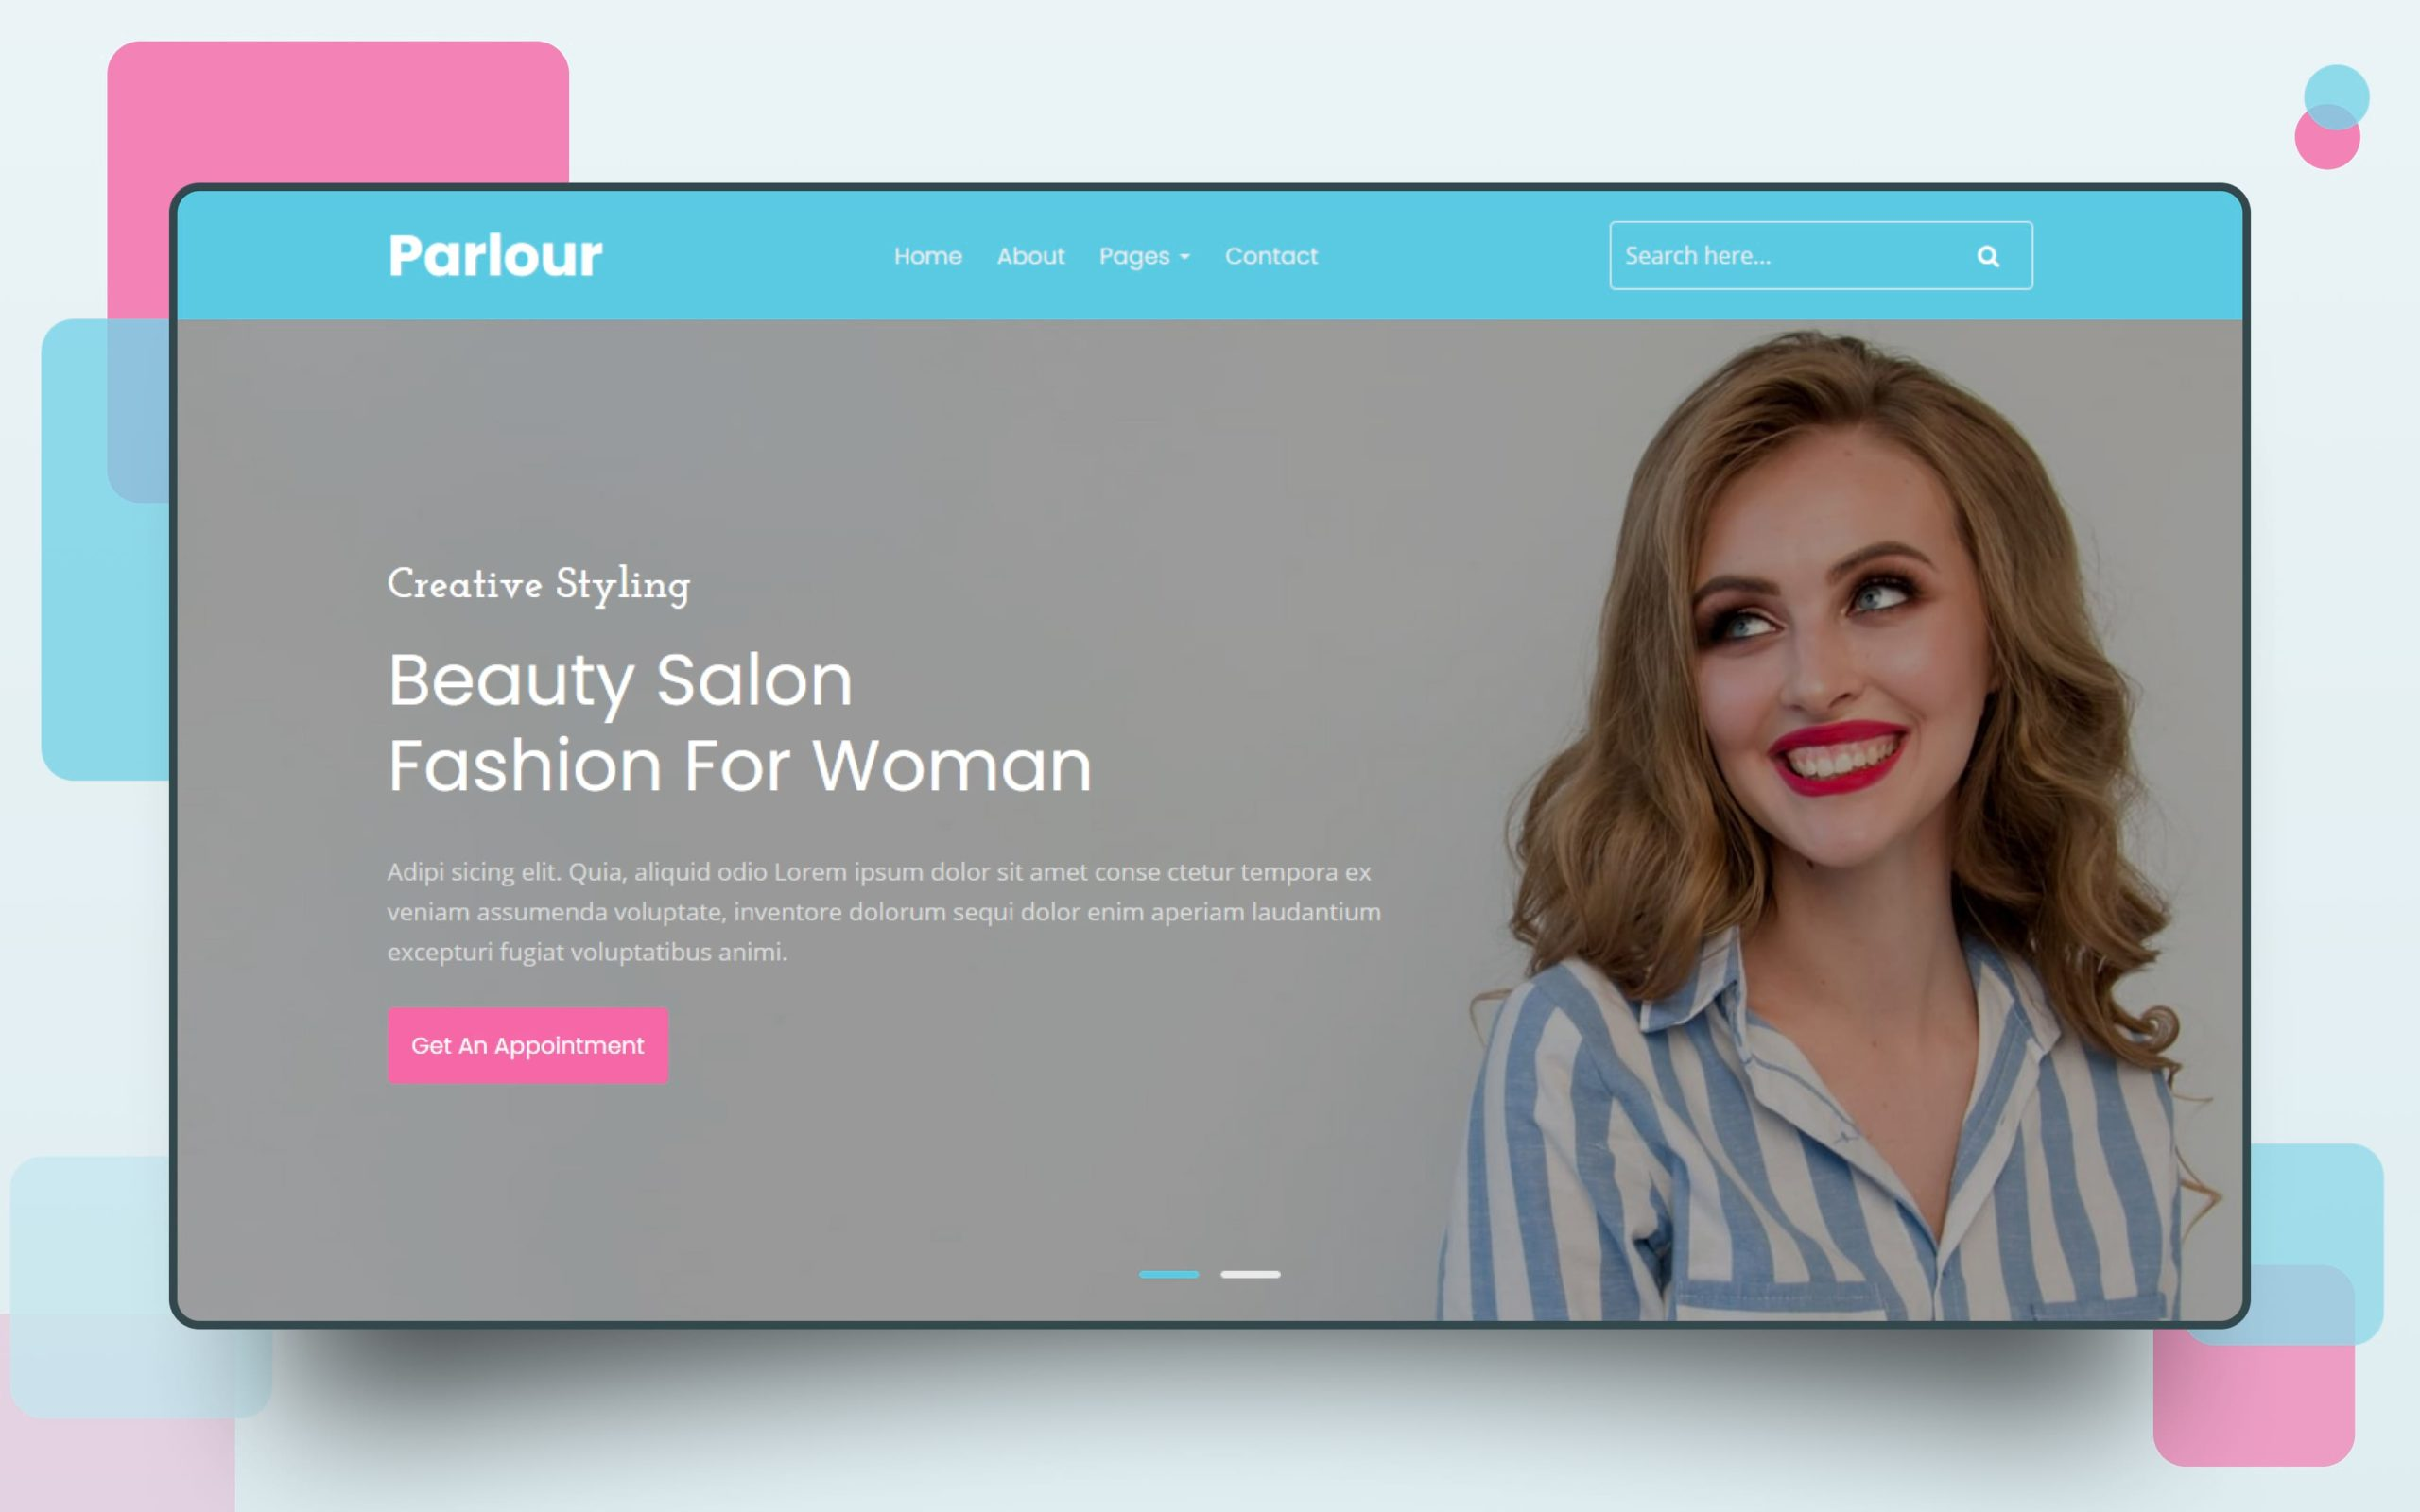 Parlour Website Template